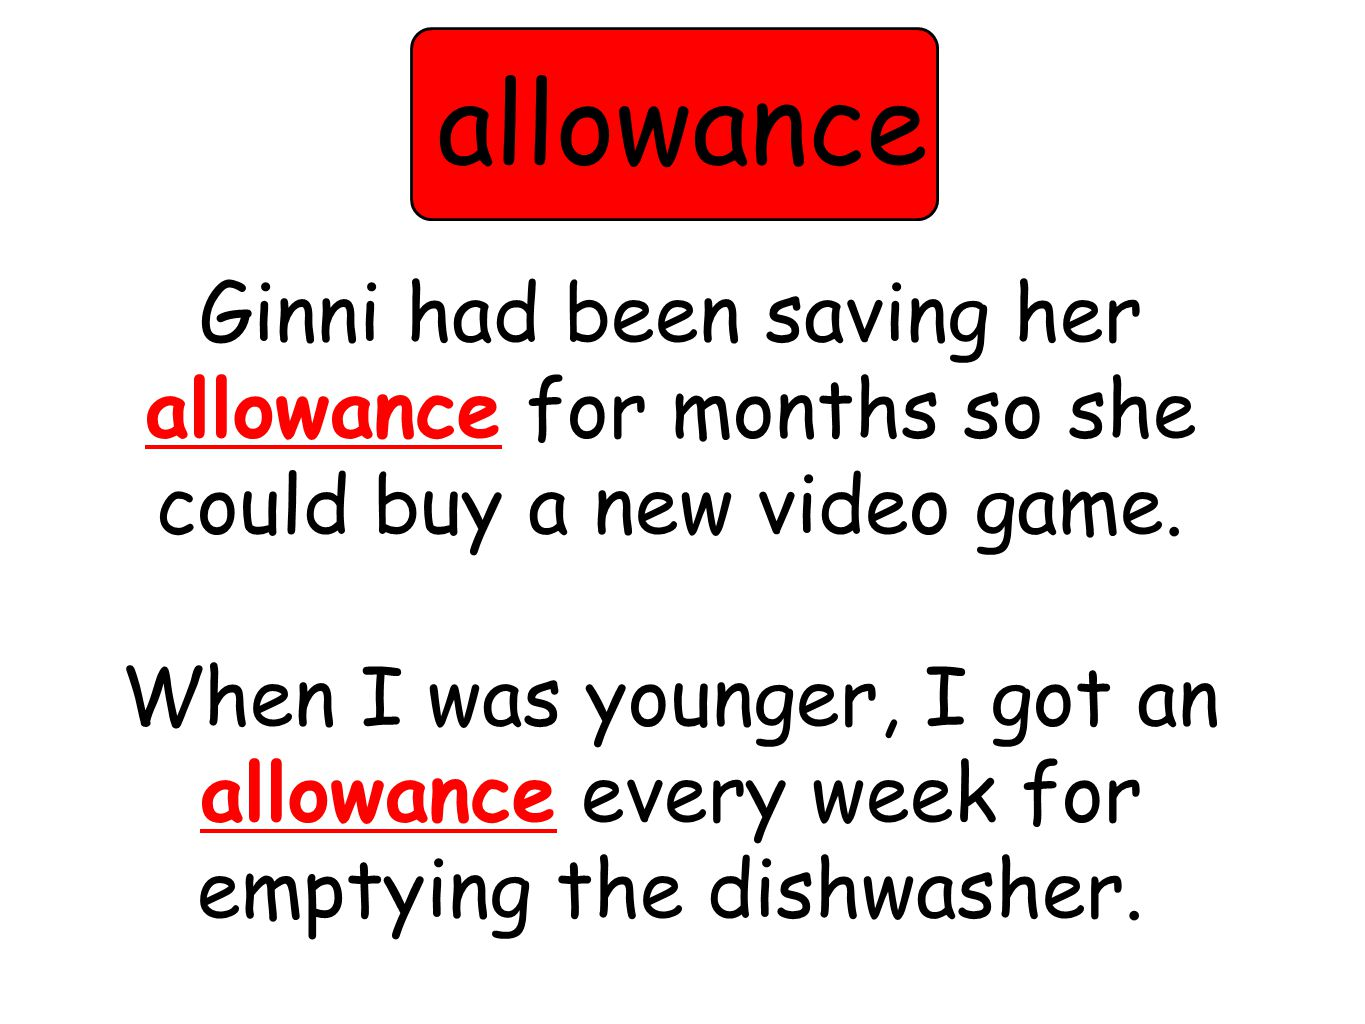 Ginni had been saving her allowance for months so she could buy a new video game. When I was younger, I got an allowance every week for emptying the d